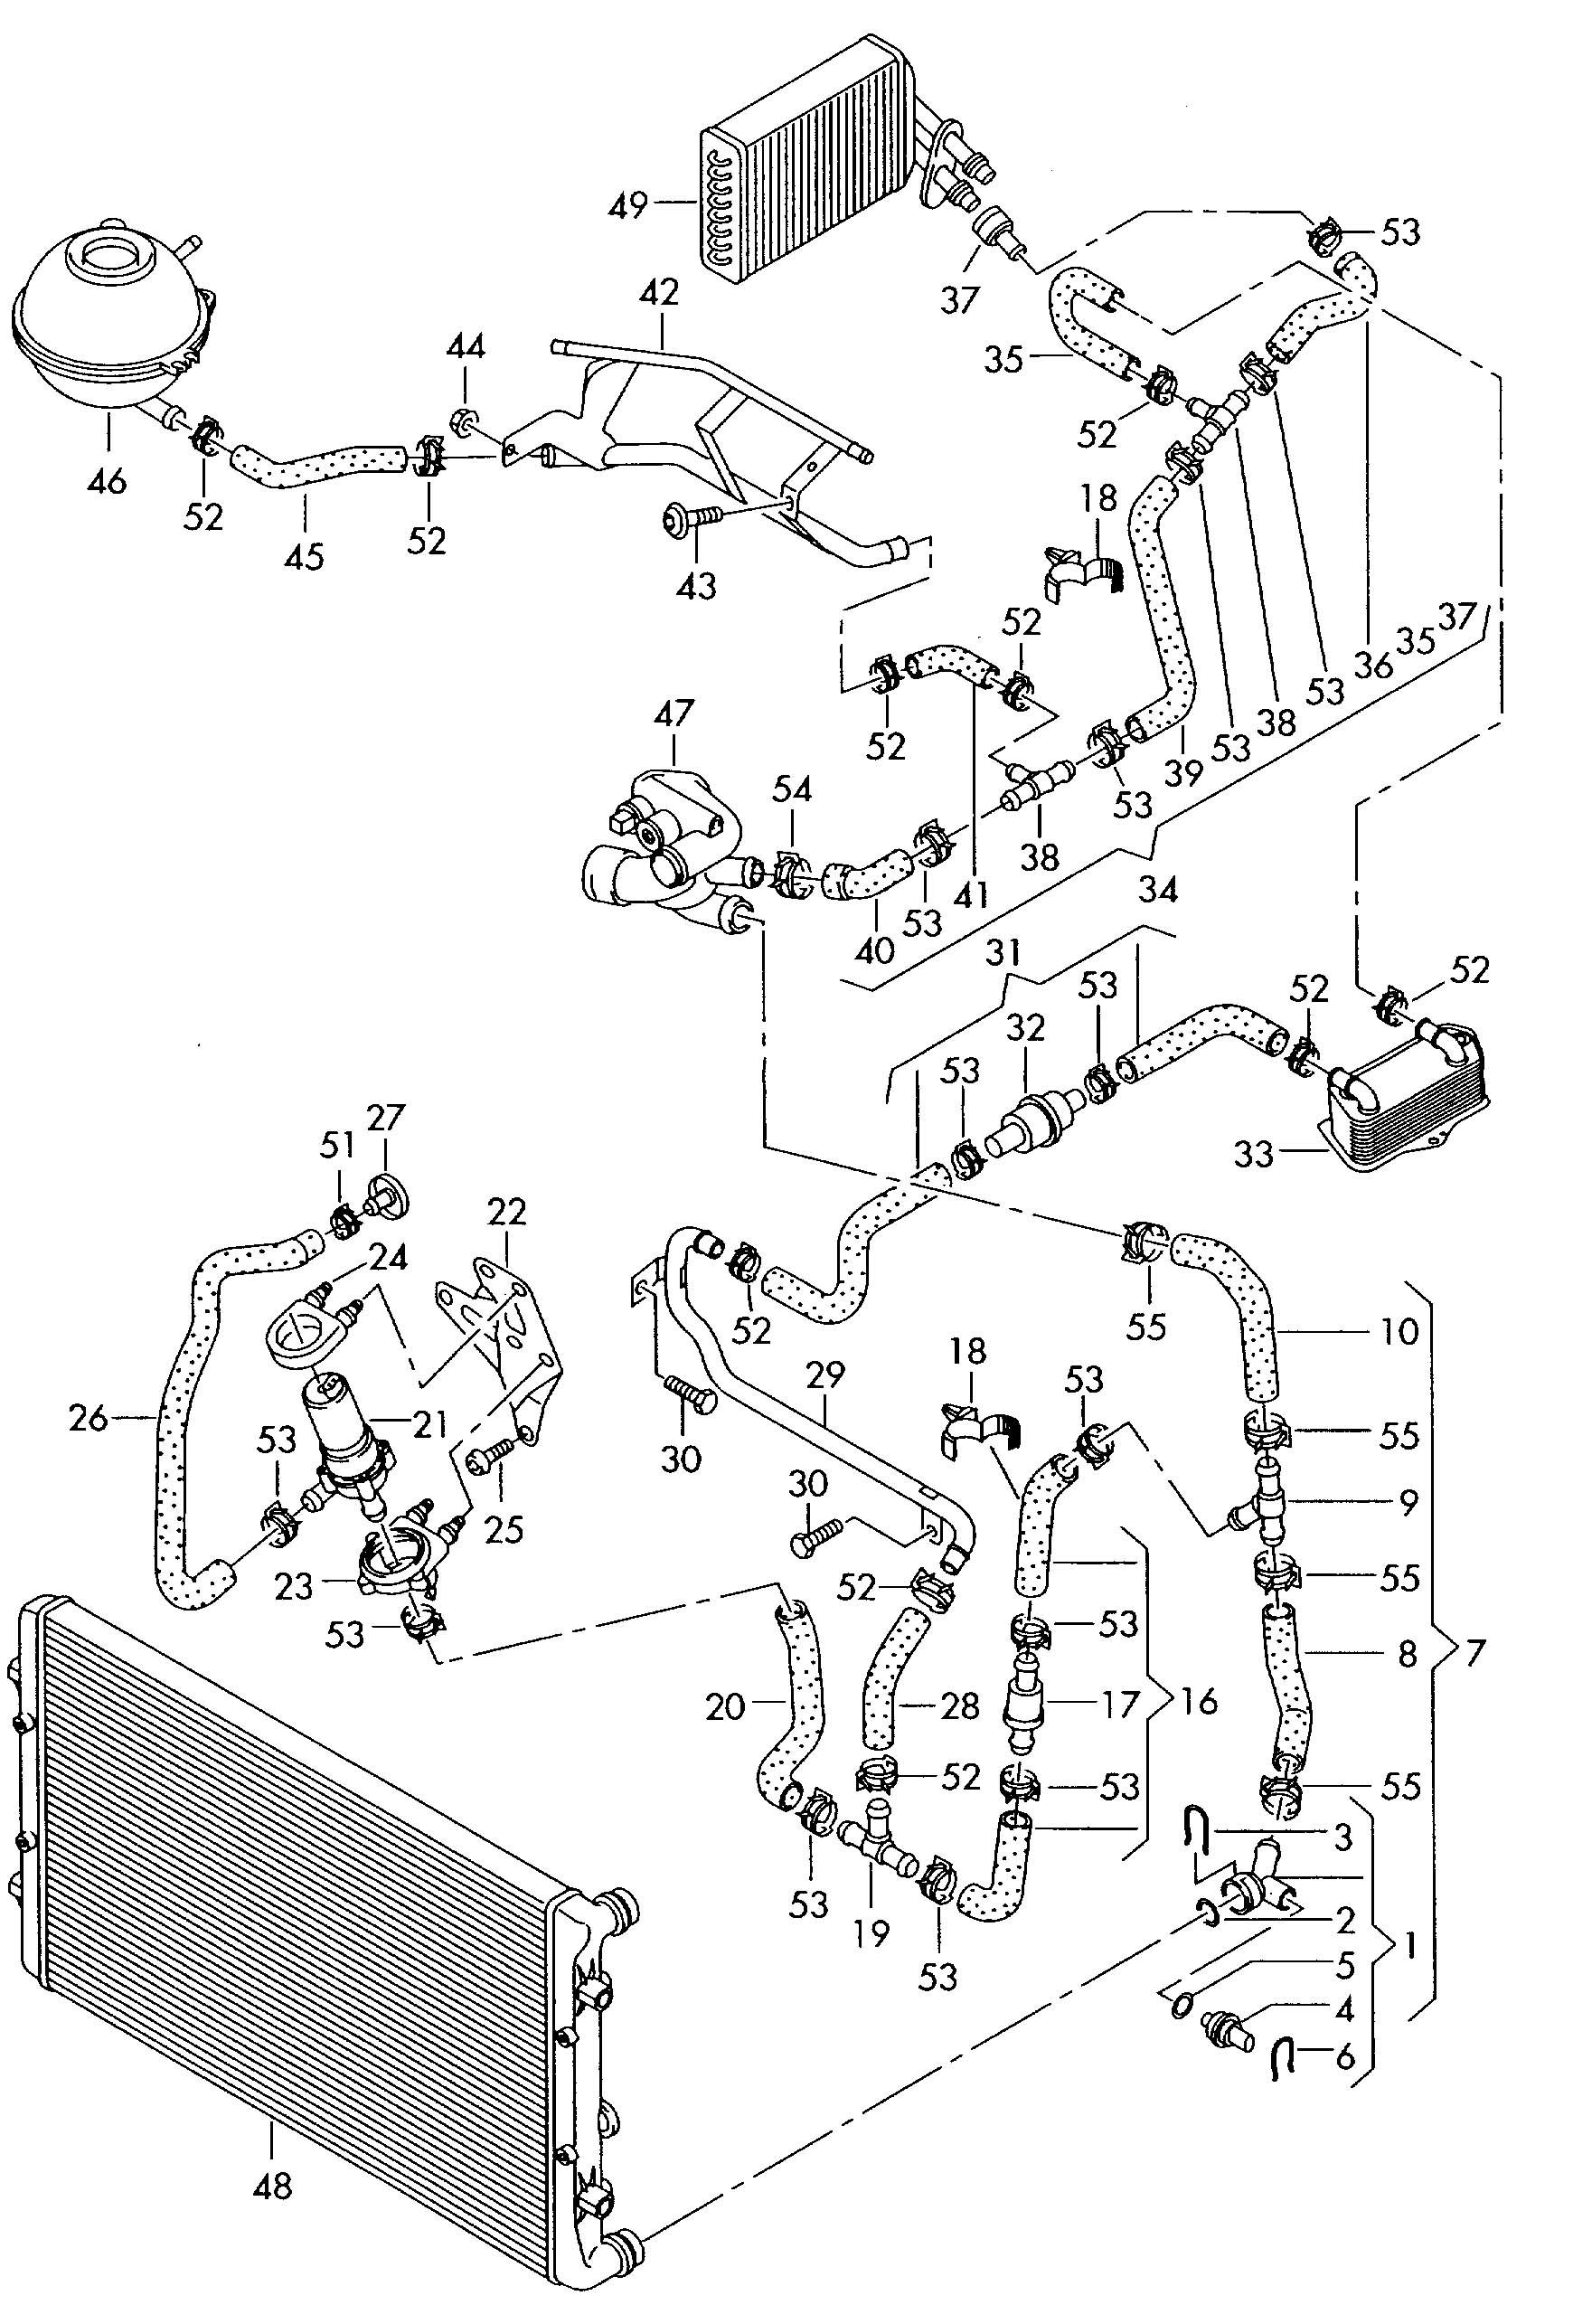 Audi A3 2016 Coolant Rs7 Engine Diagrams Cooling System Diagram Pinterest